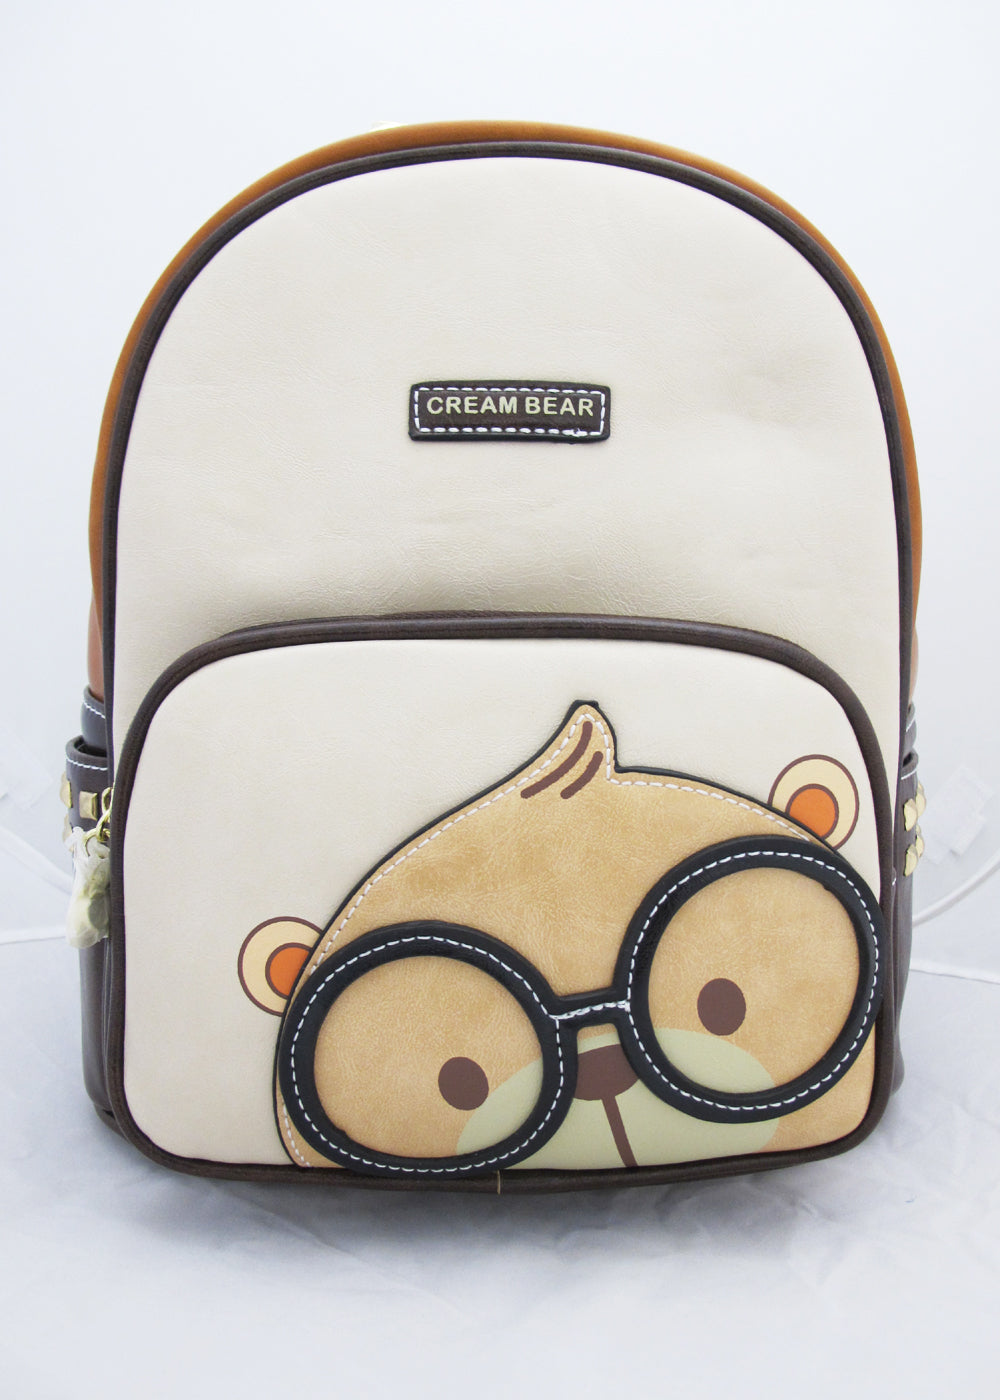 Cream Bear C1027-3 Adorable reppu